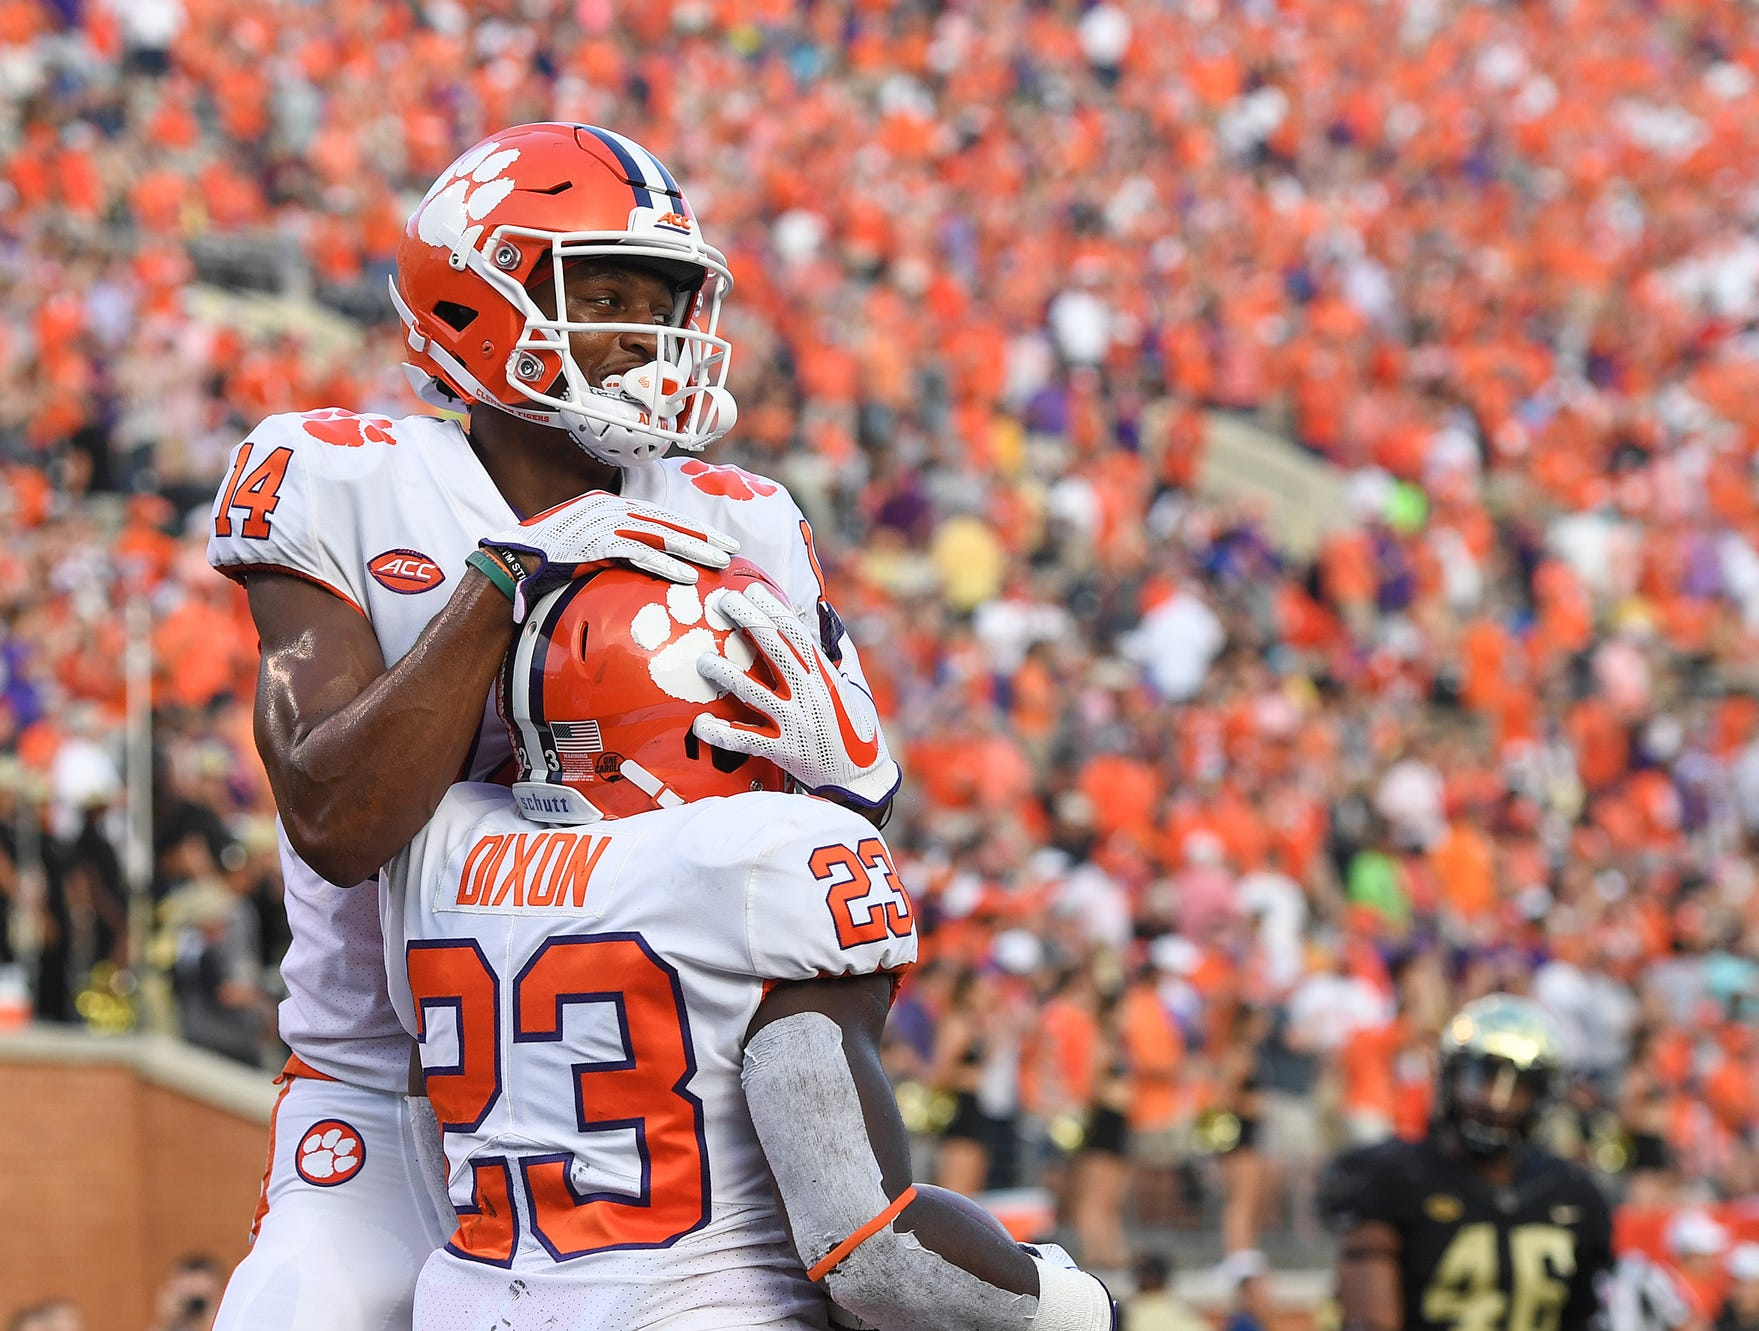 Clemson running back Lyn-J Dixon (23) celebrates with teammate wide receiver Diondre Overton (14) after scoring against Wake Forest during the 3rd quarter at BB&T Field in Winston Salem, N.C. Saturday, October 6, 2018.